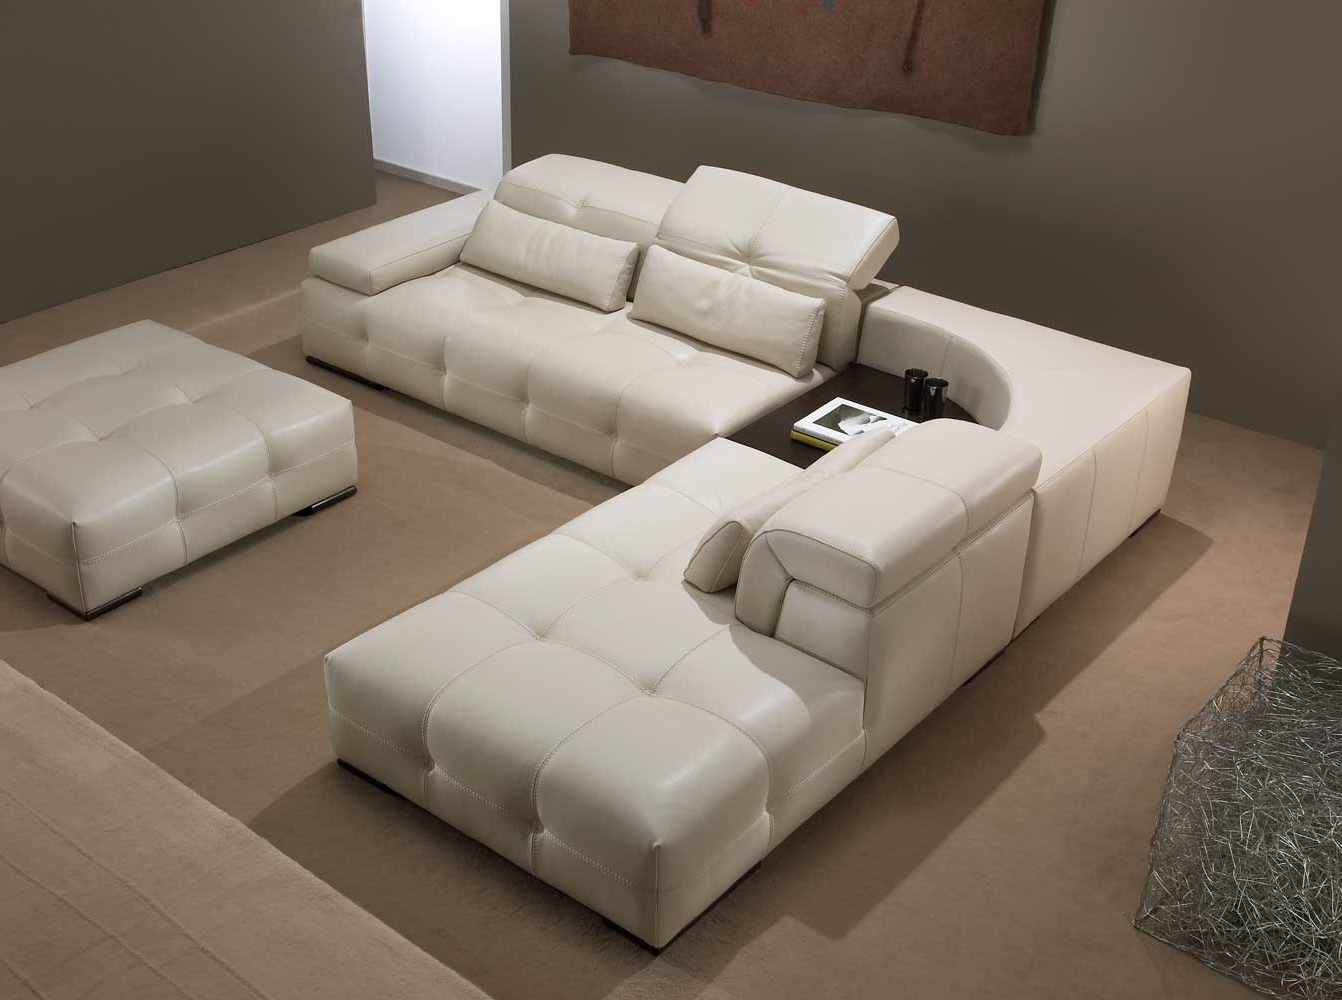 Gamma Paramount – Bif Usa Inside Preferred Queens Ny Sectional Sofas (View 4 of 20)